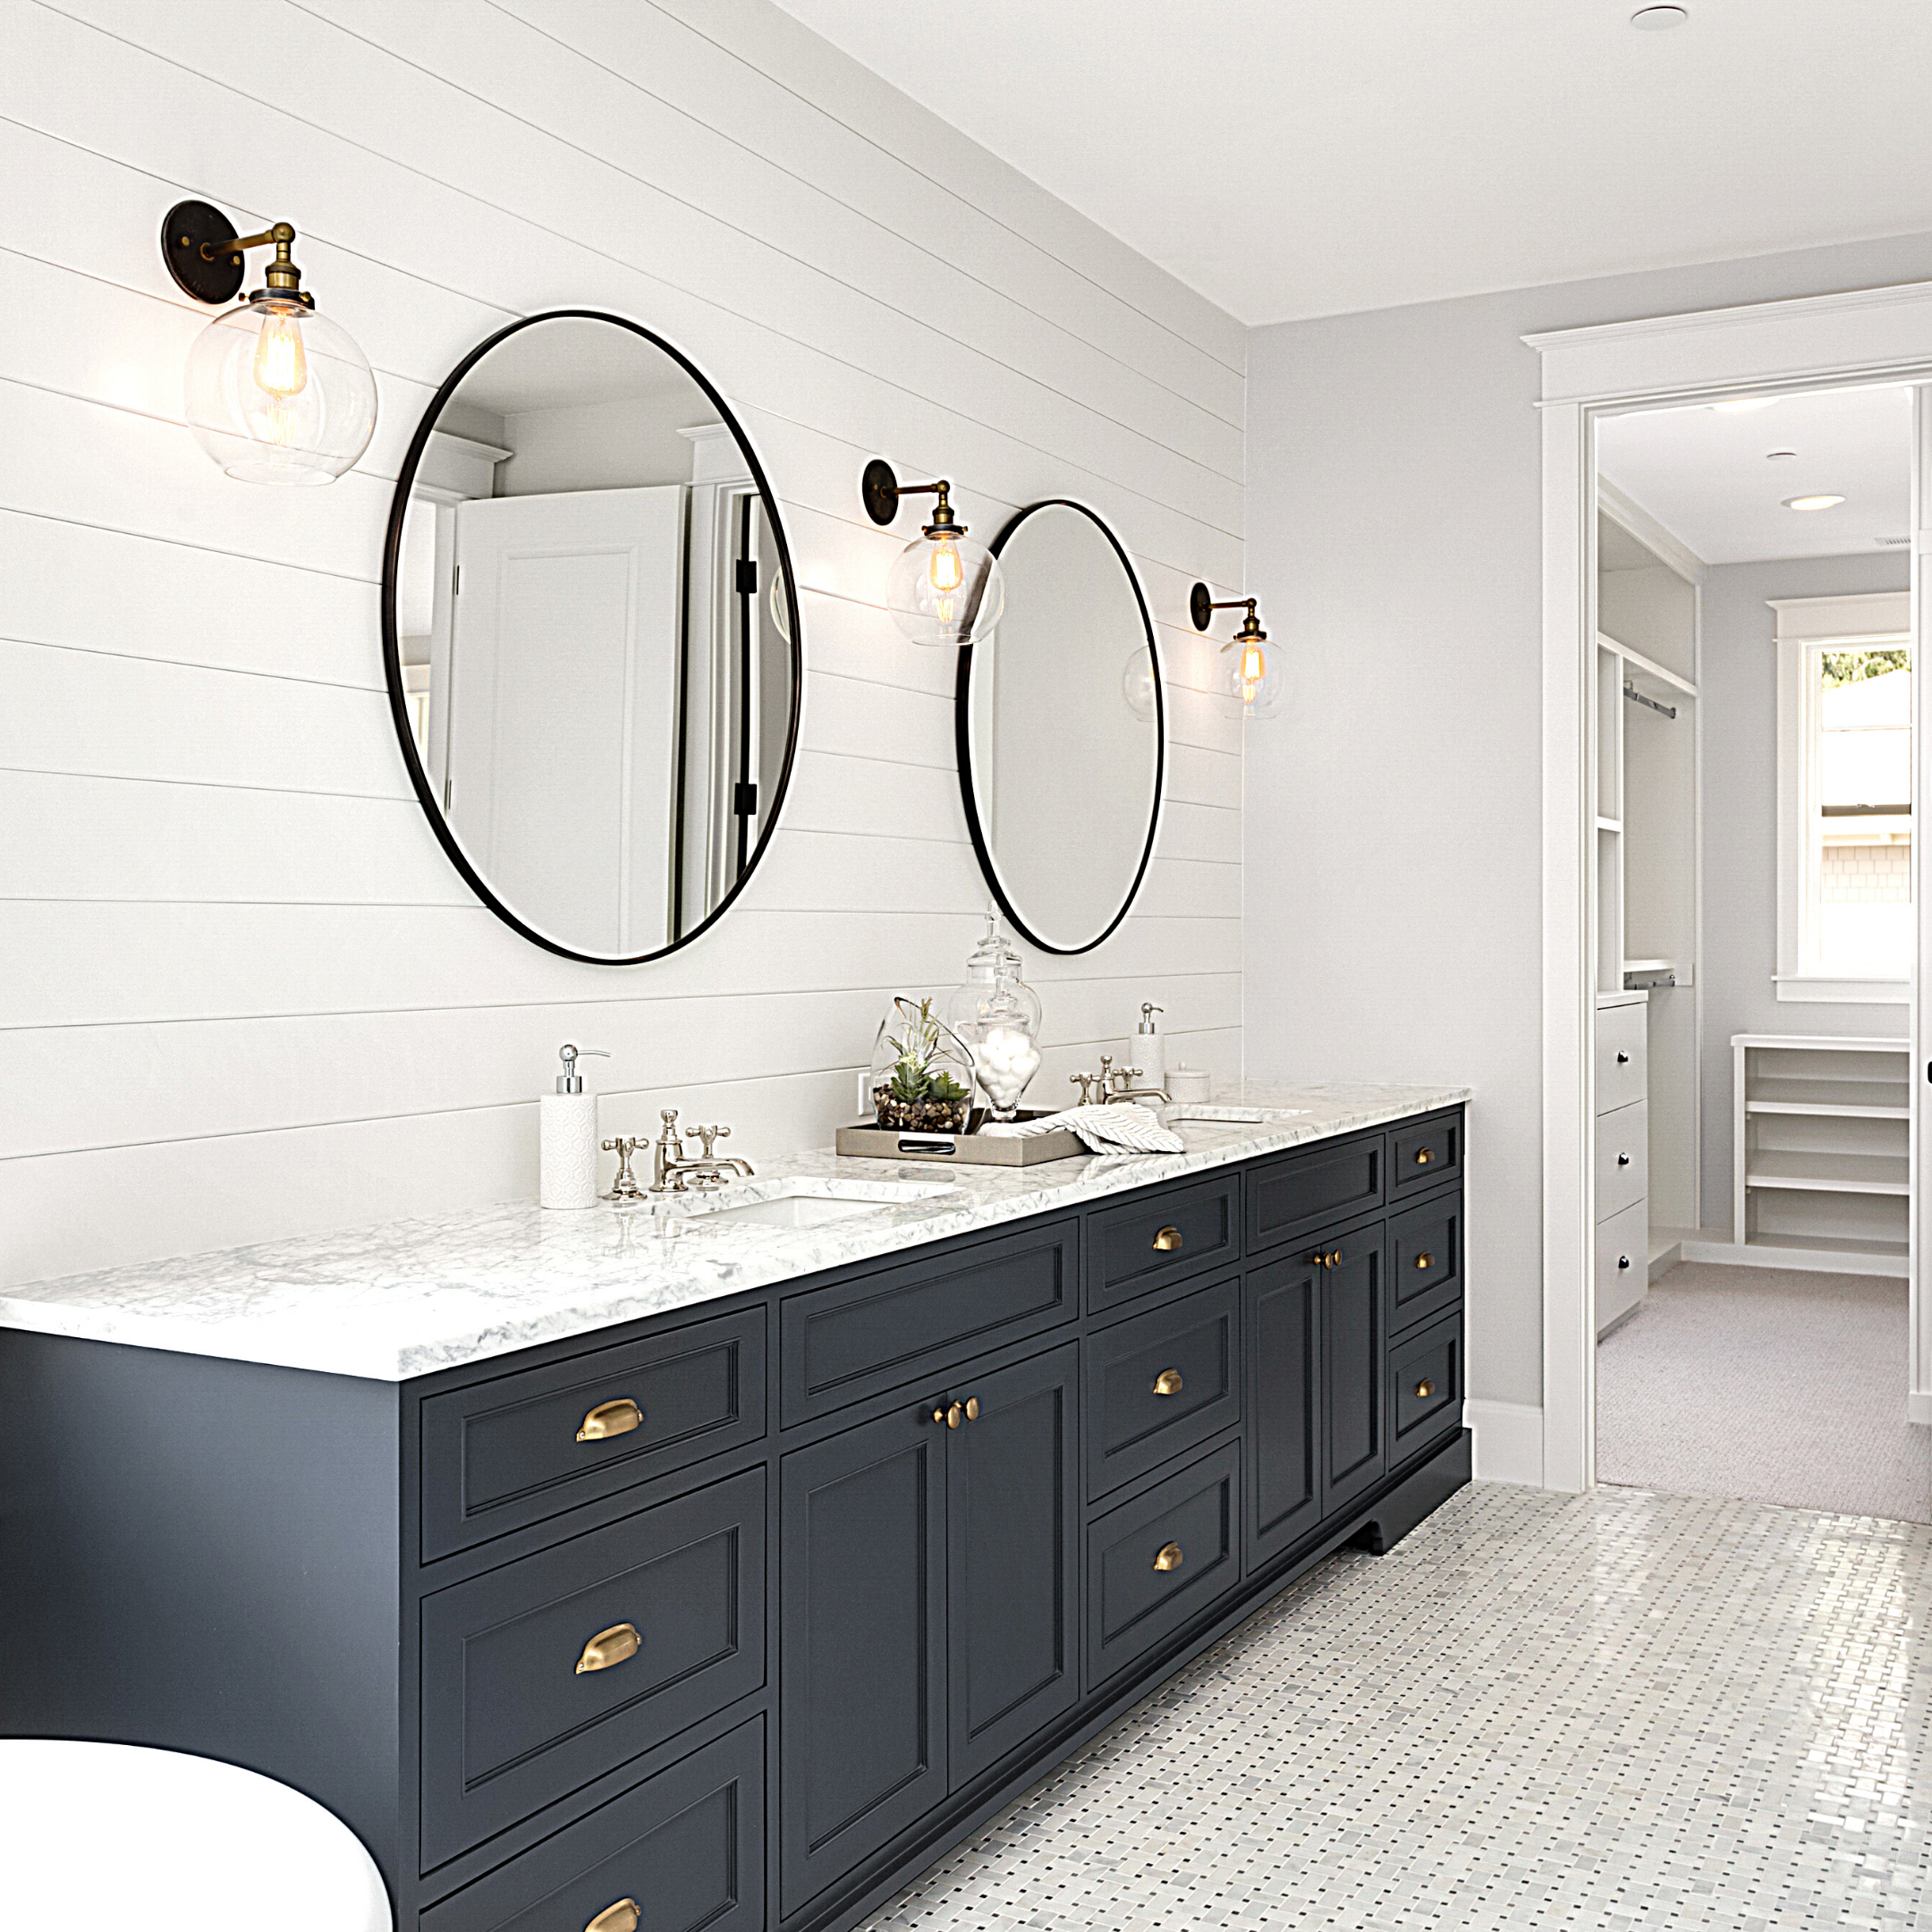 What does your dream bathroom look like? . . . . . #homeinspo #homeinspiration #homedesign #howyouhome #follow #homedecor #homesweethome #mydiyhome #homedesigning #homedecoration #homeideas #homeimprovement #homestyling #hometrends #instahome #thehomemag #TheHomeMagUt #utahhomemag #supportsmall #supportutah #utahlocalbusiness